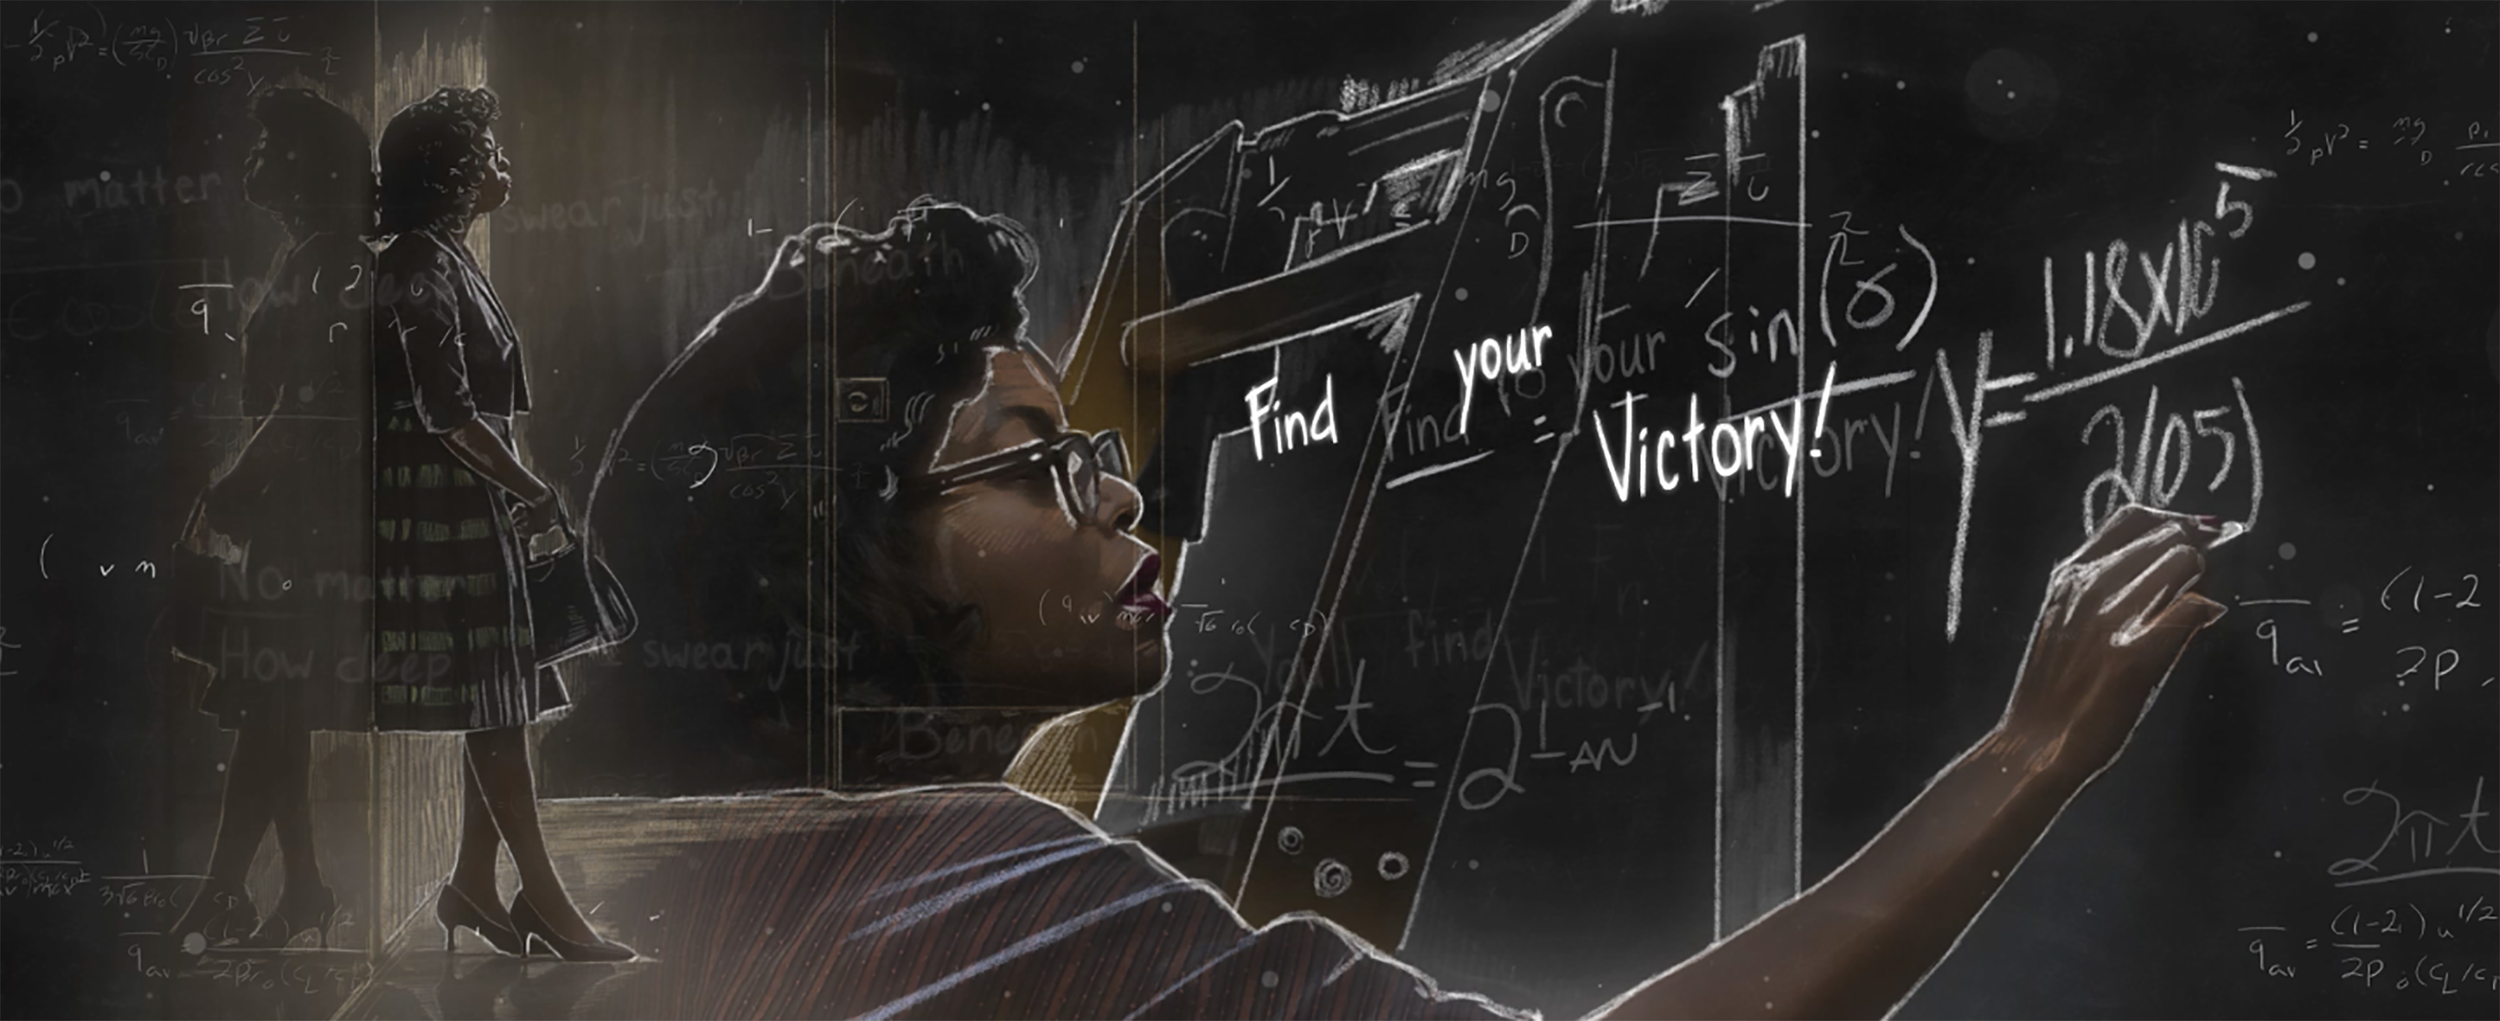 hidden-figures-lyric-video-header.png